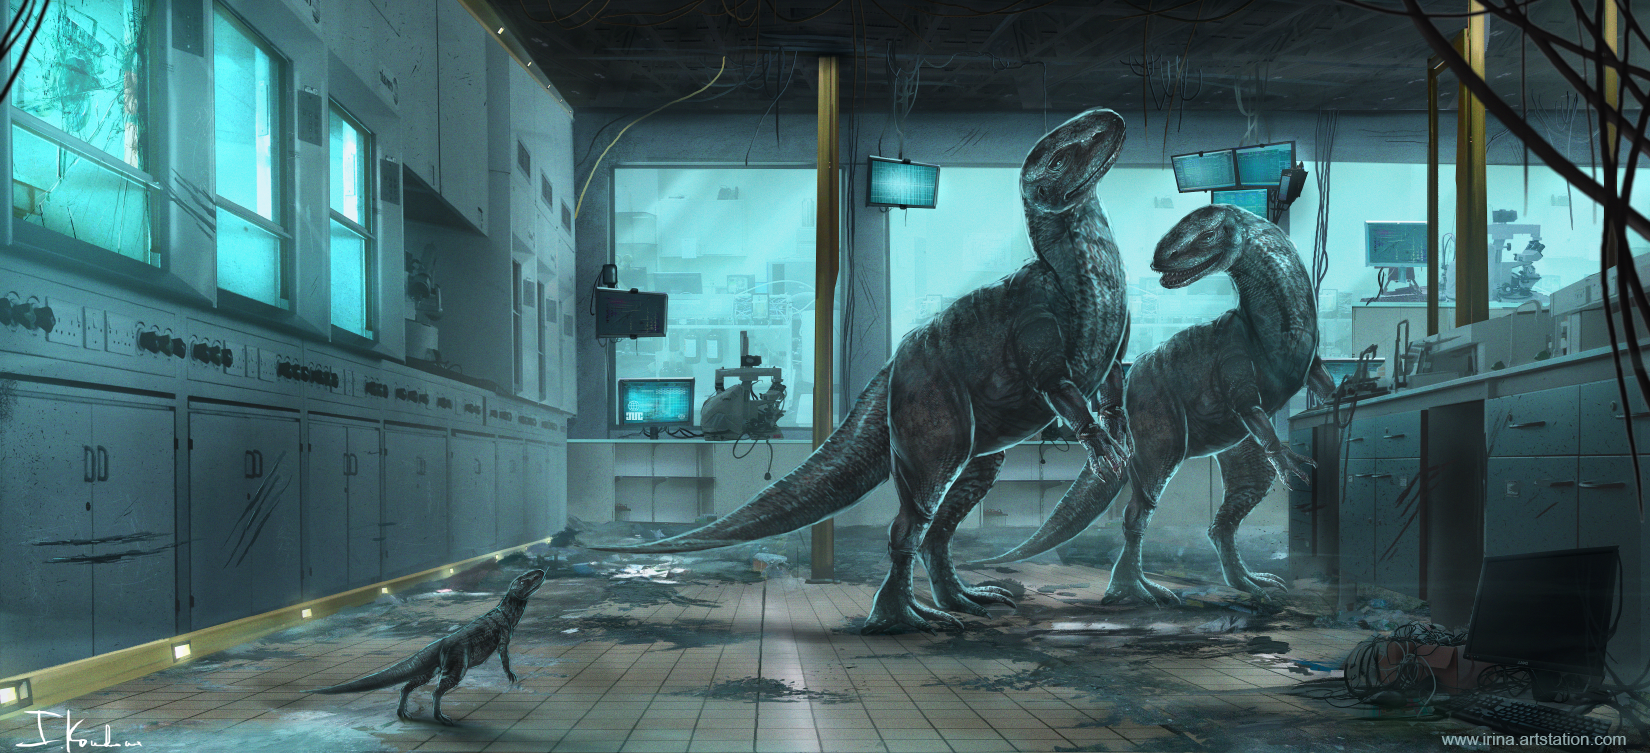 Dinosaurs in a Lab